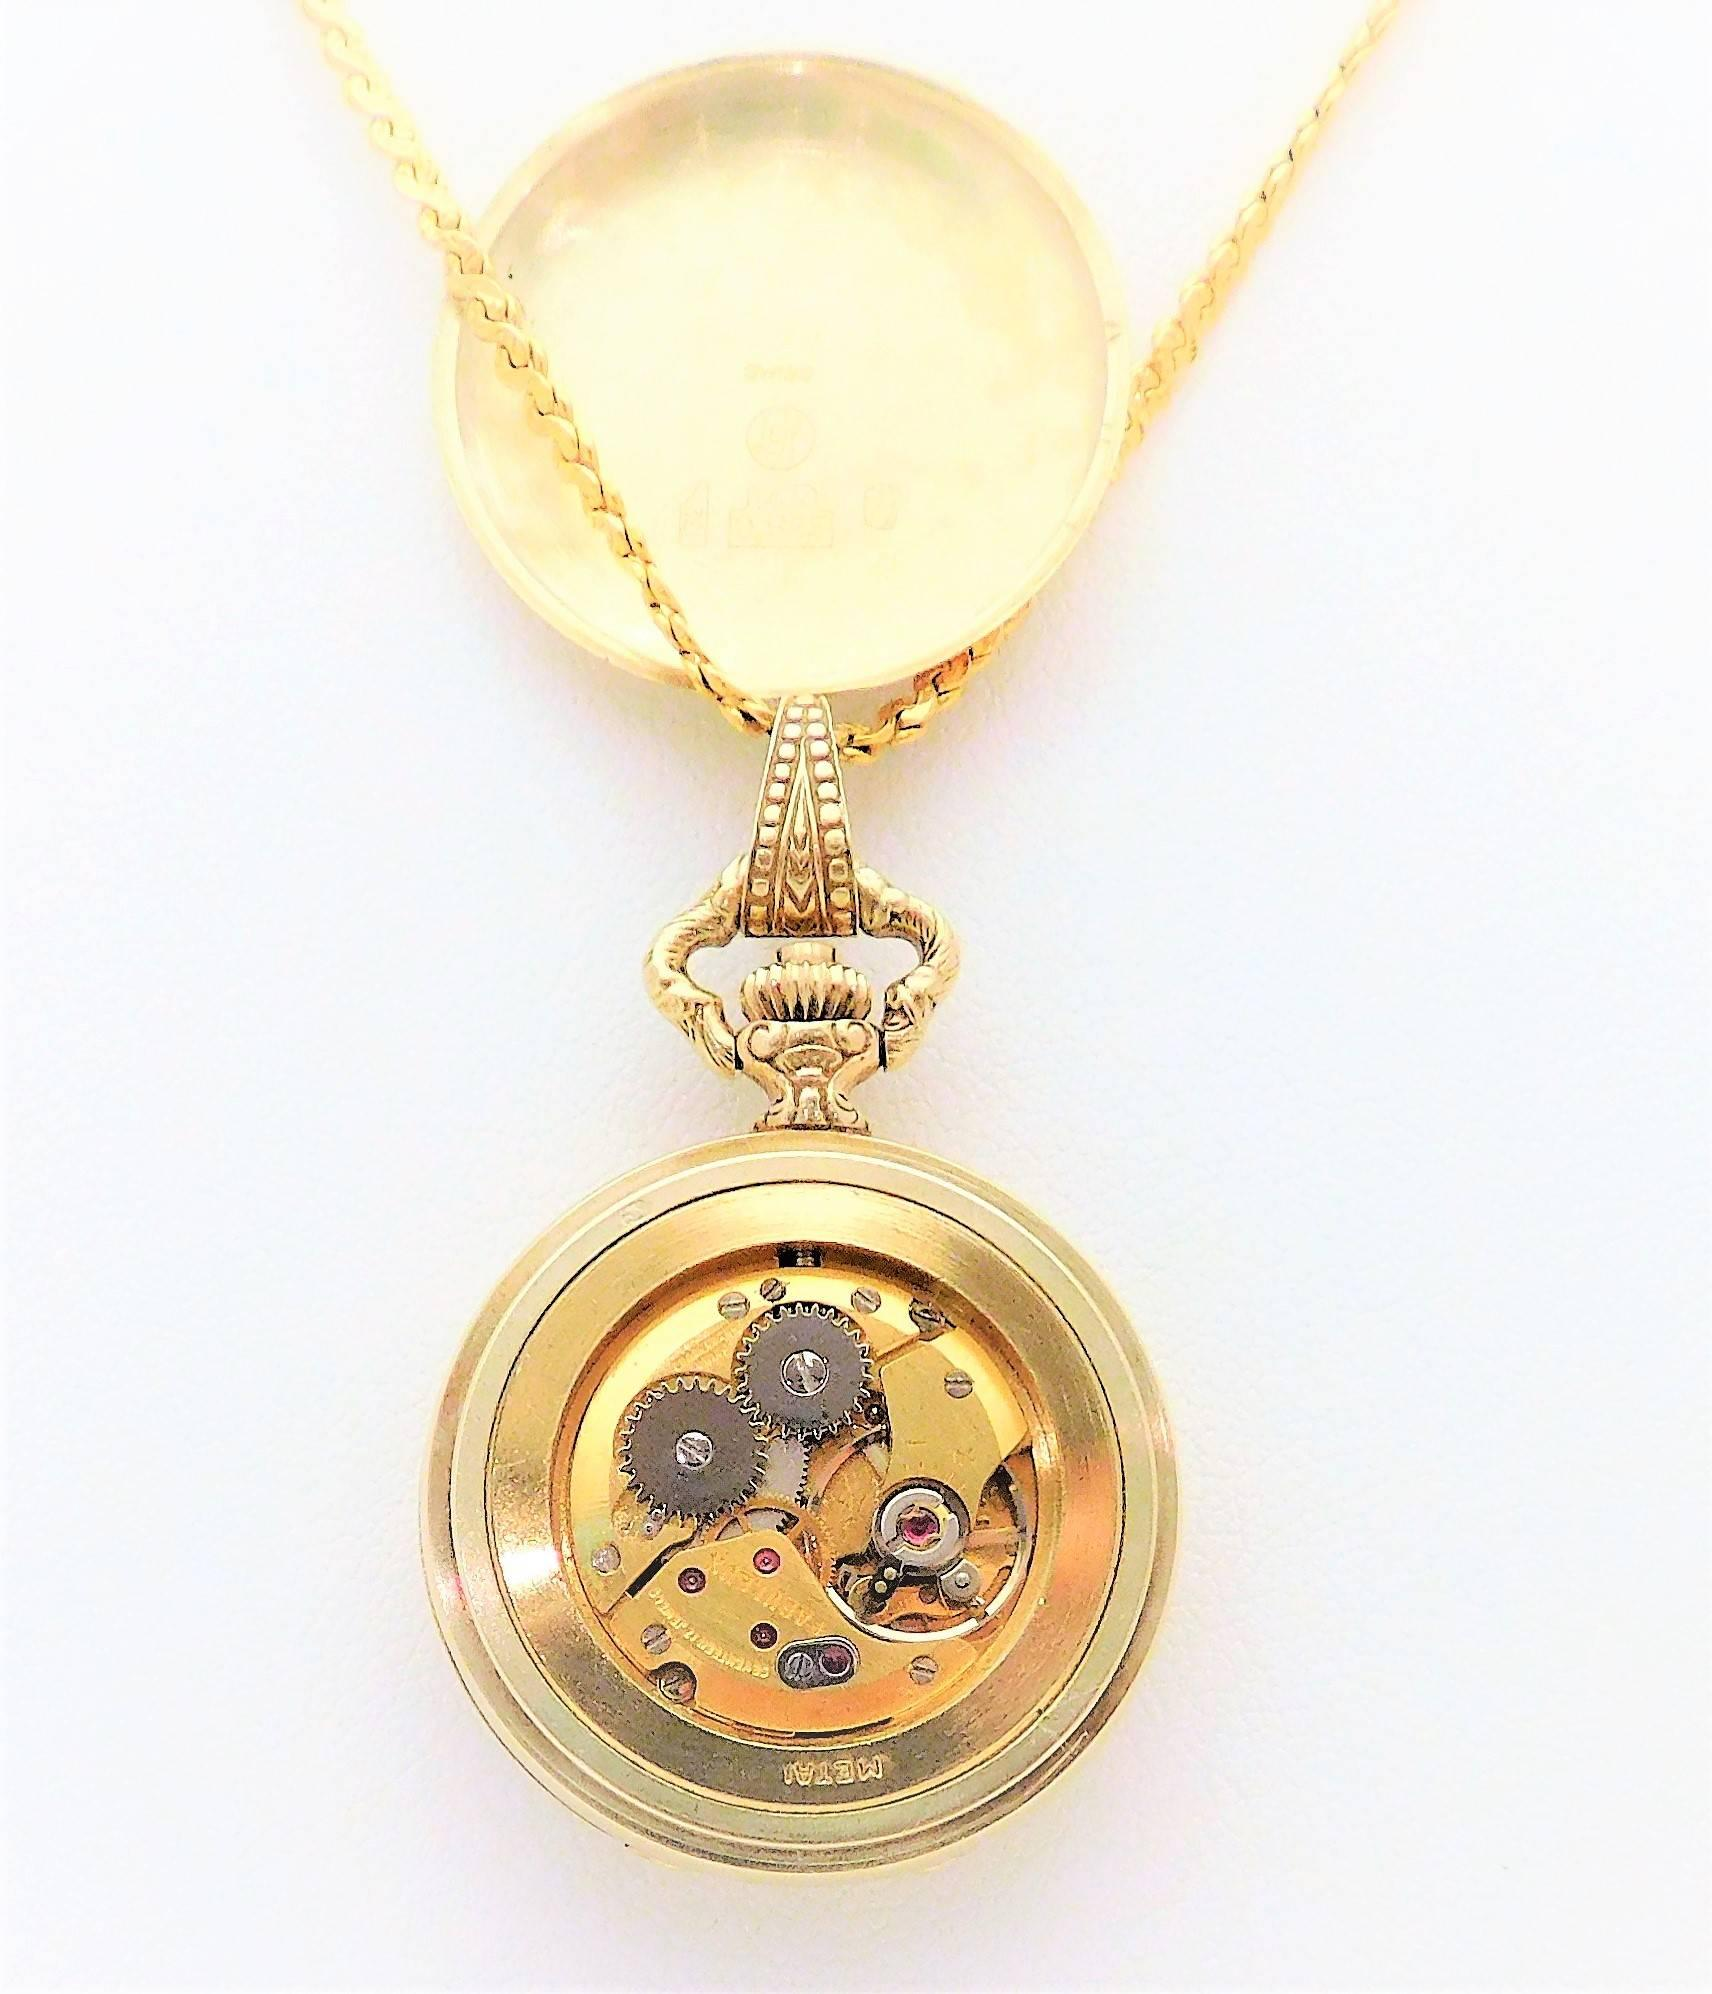 antique great quarterpastvintage pin waltham fob present pocket victorian solid pendant watch gold ladies by necklace gift anniversary intricate